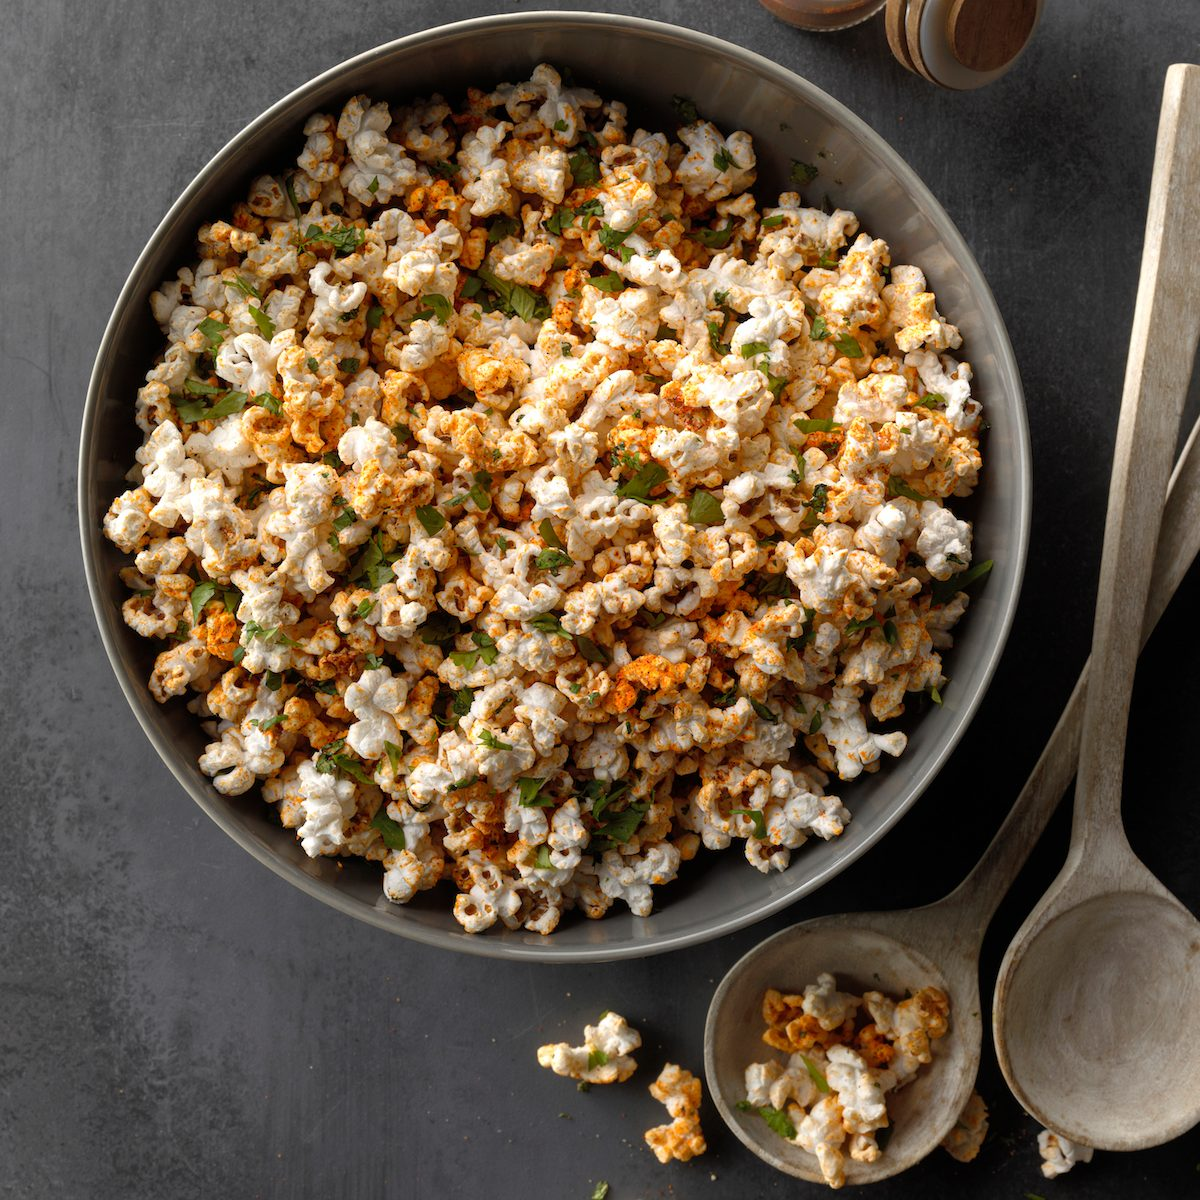 A bowl of seasoned homemade stovetop popcorn.